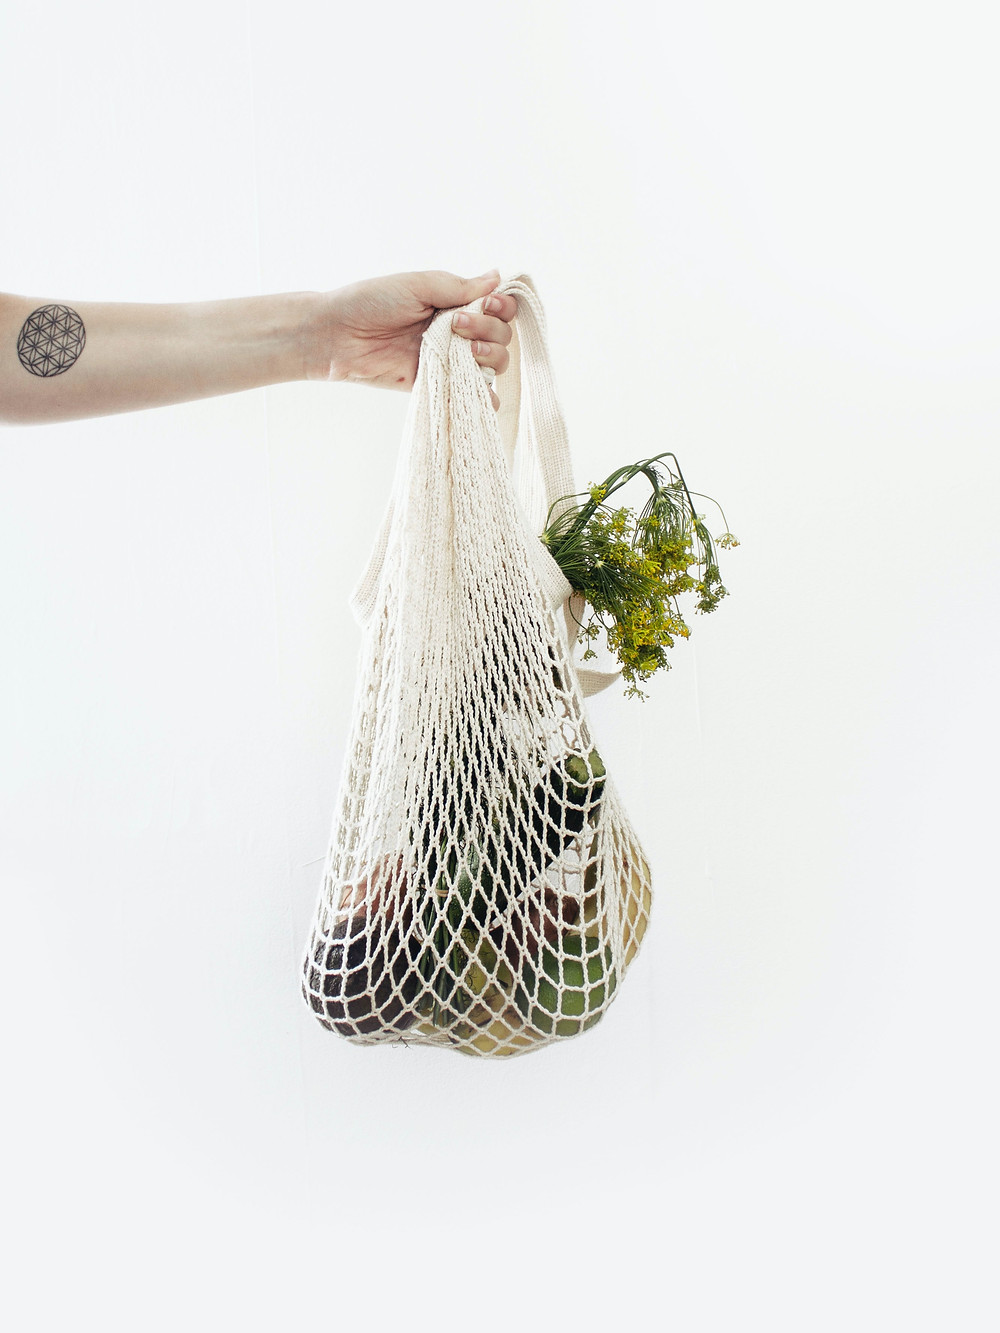 Person holding reusable bag with vegetables